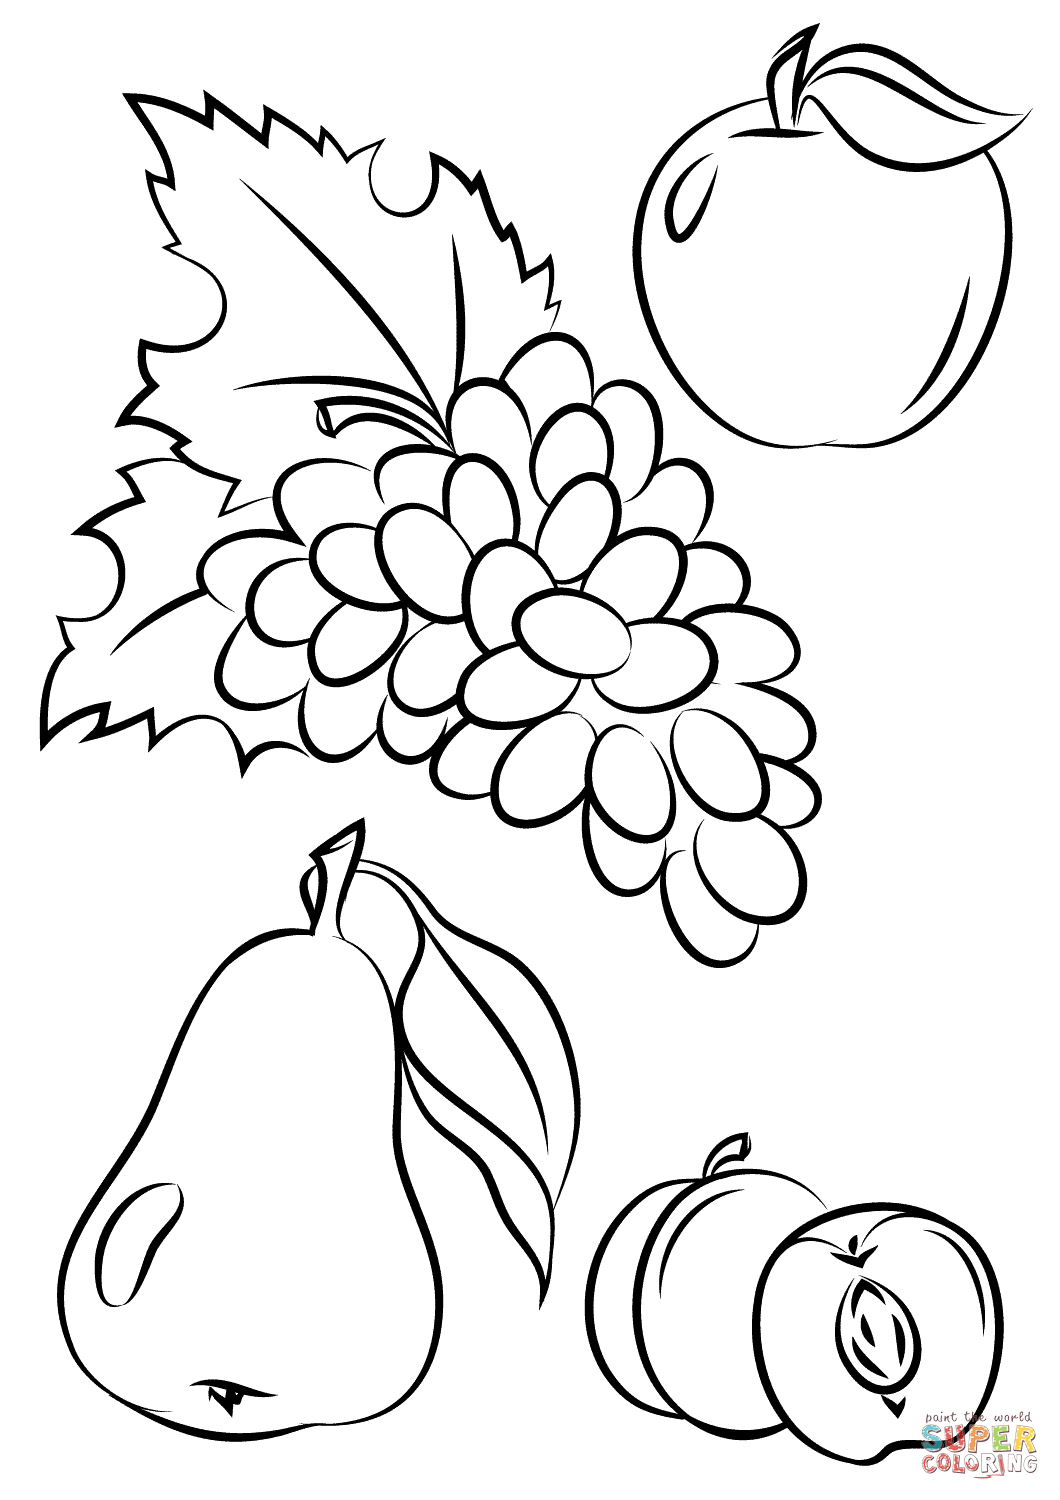 1060x1500 Fruits Coloring Pages Preschool In Amusing Draw Image Printable